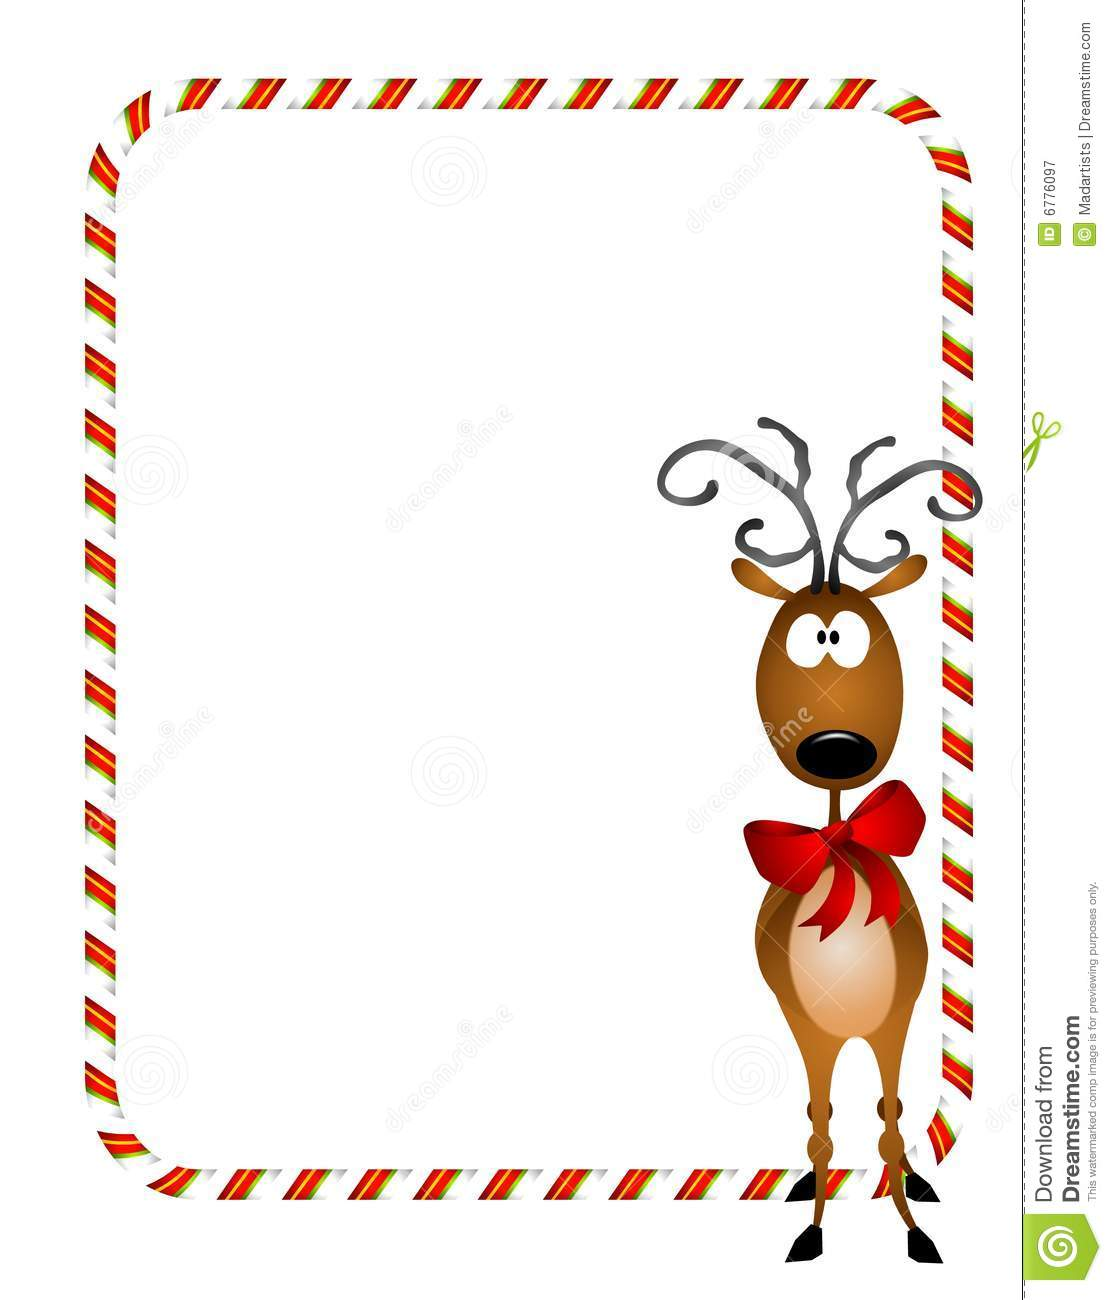 Xmas Border Clipart | Free download on ClipArtMag